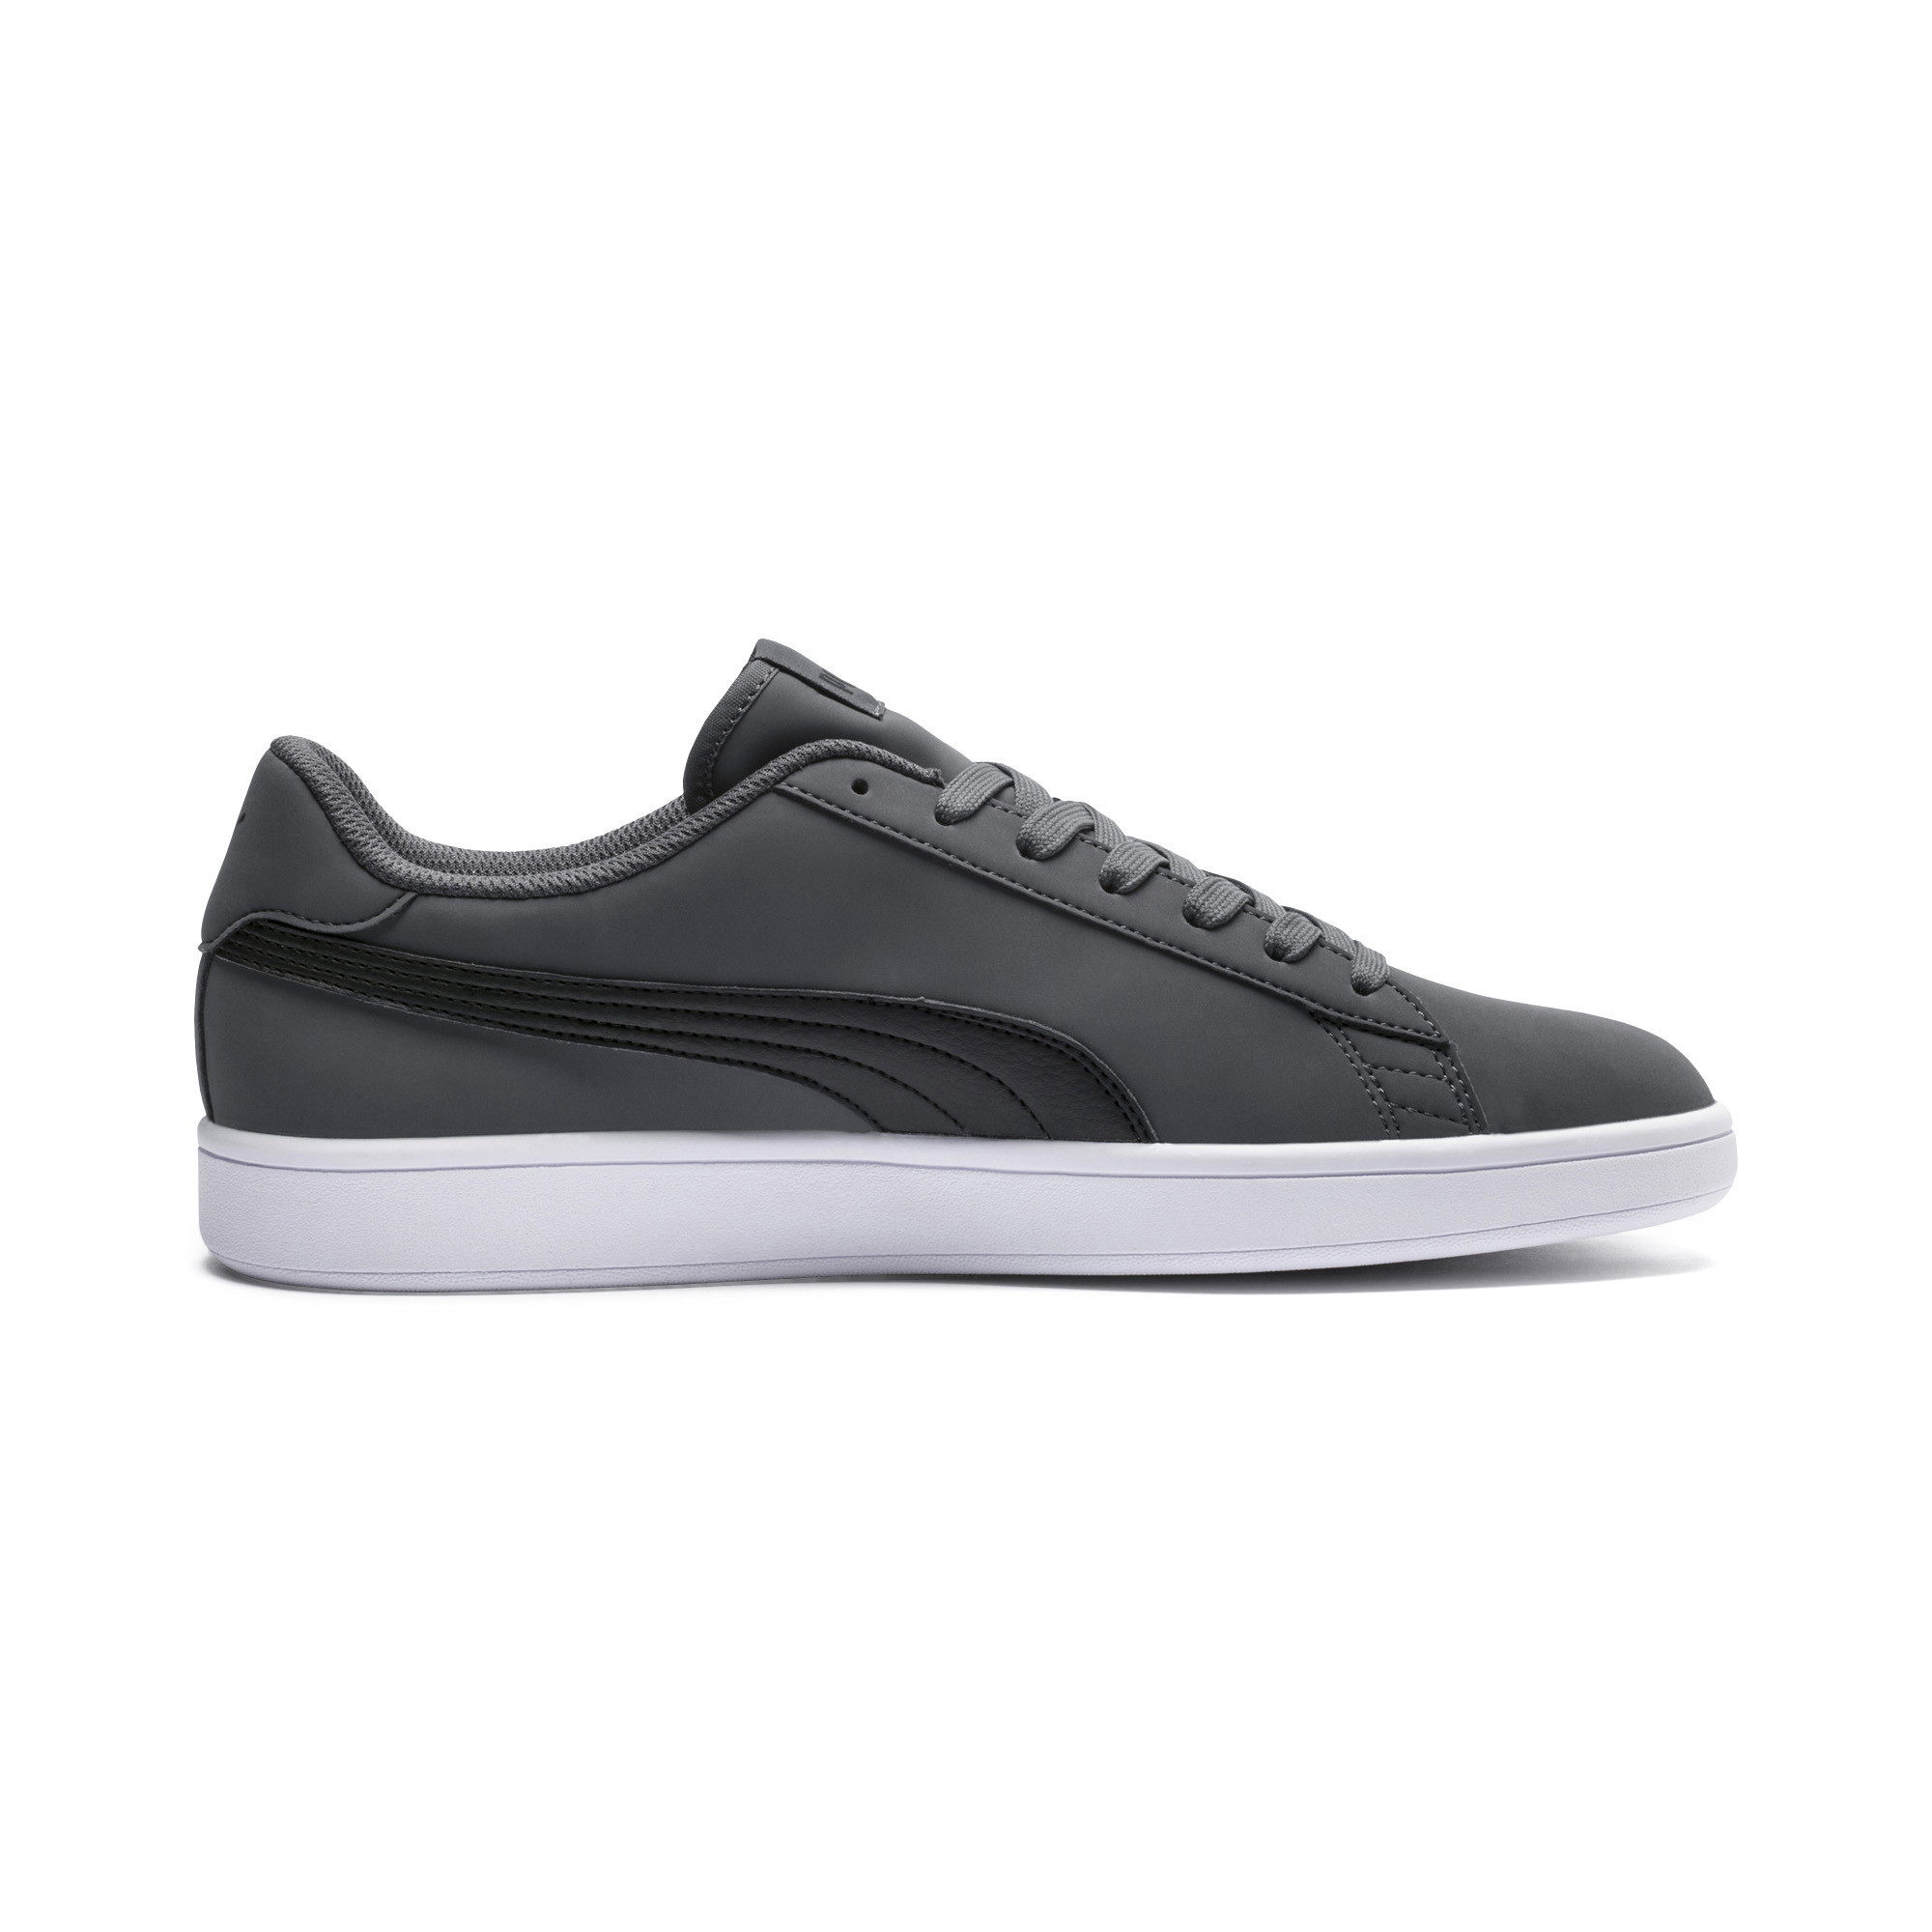 PUMA-PUMA-Smash-v2-Nubuck-Men-039-s-Sneakers-Men-Shoe-Basics thumbnail 12